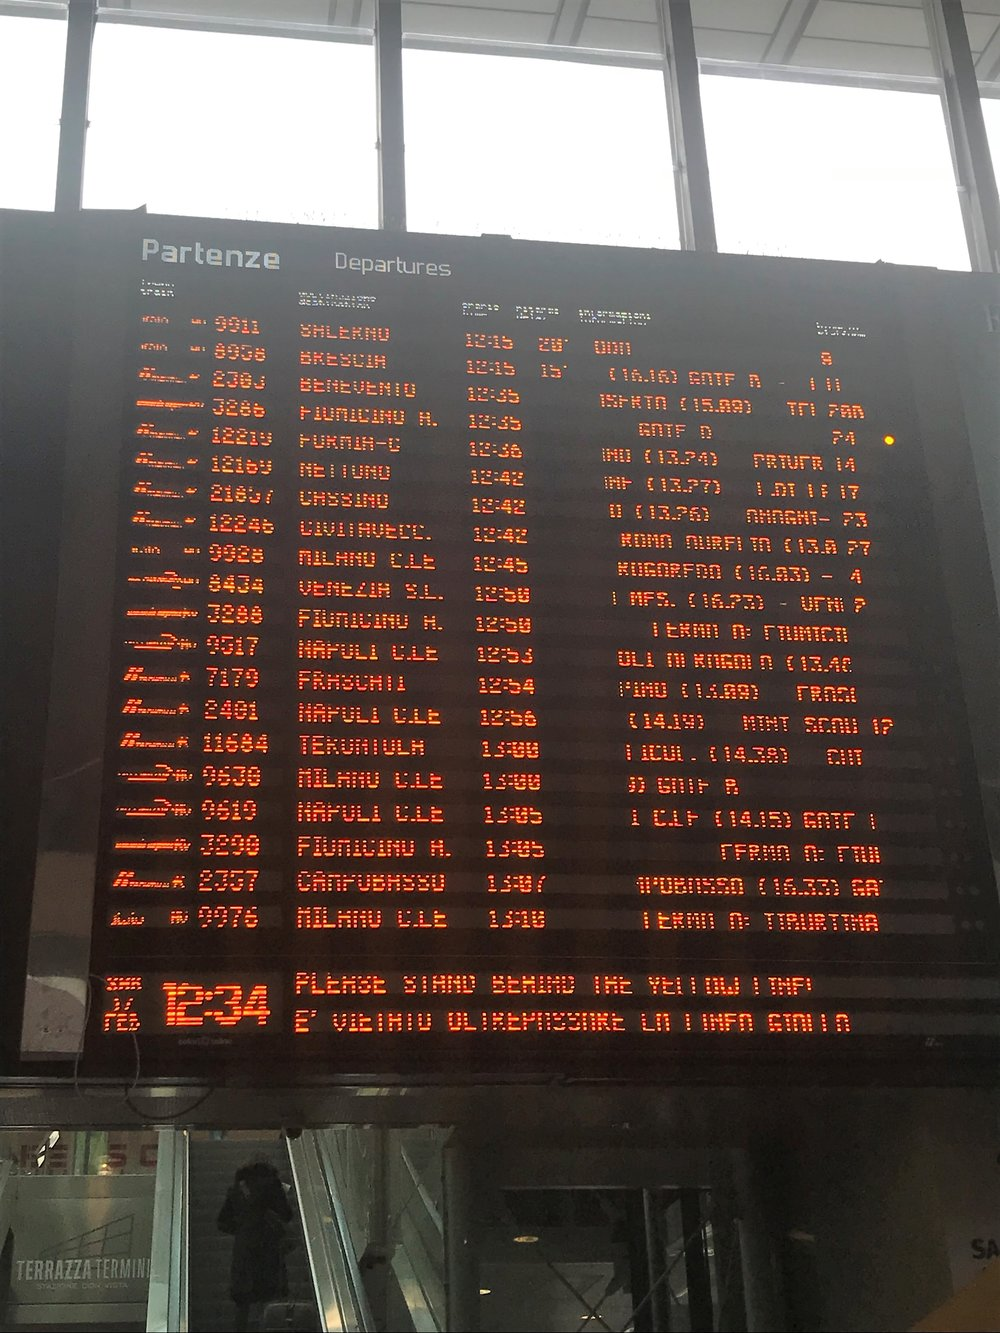 Train station destinations